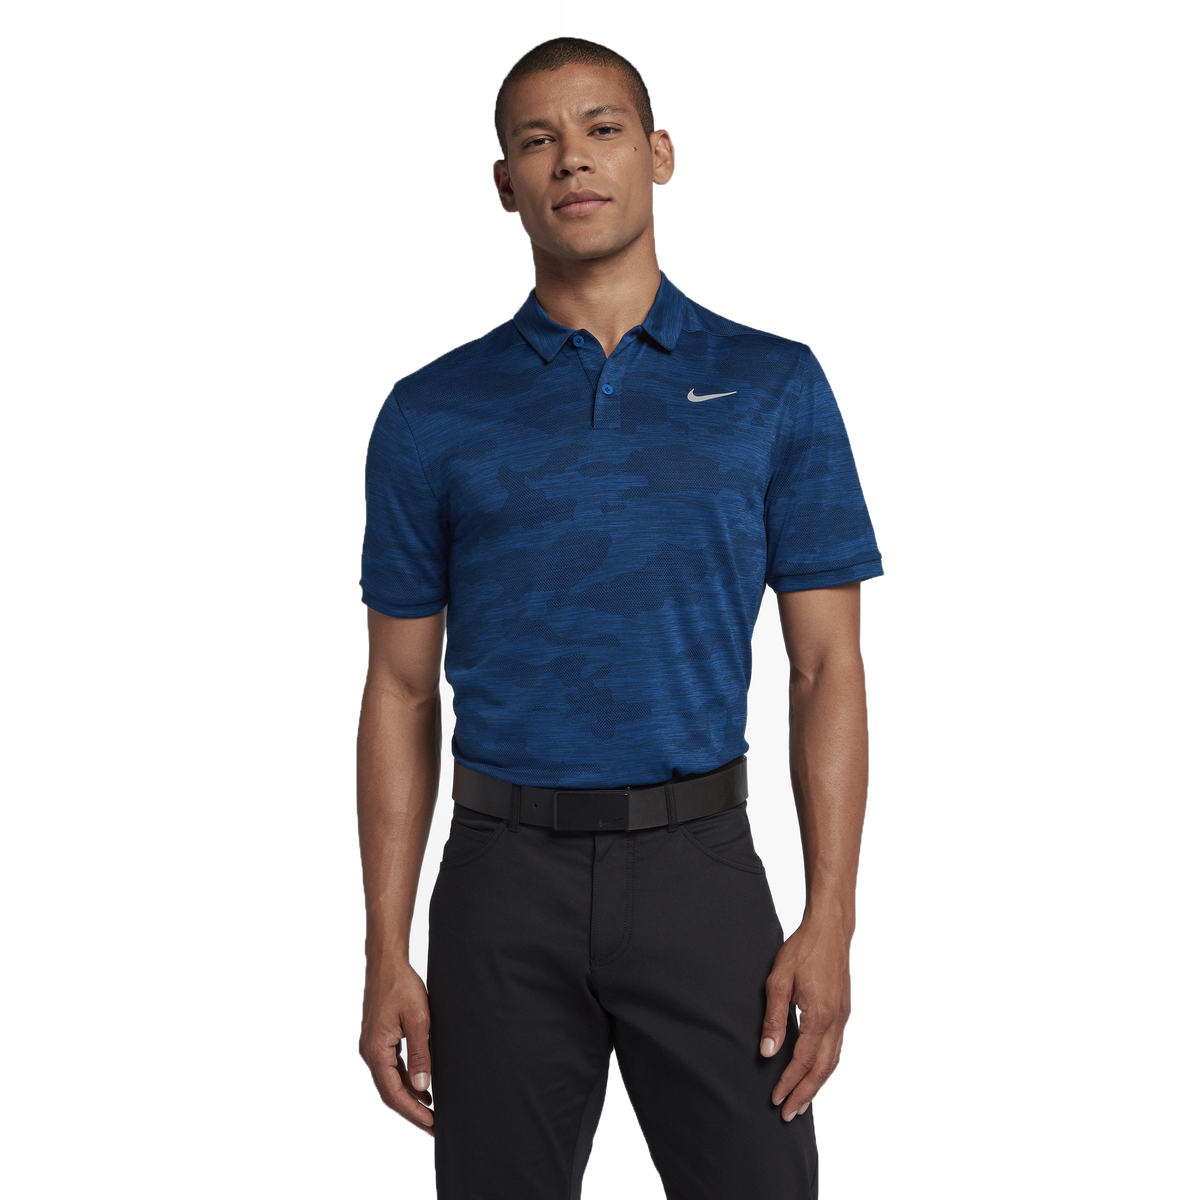 ae3c07970030 Nike Zonal Cooling Camo Golf Polo